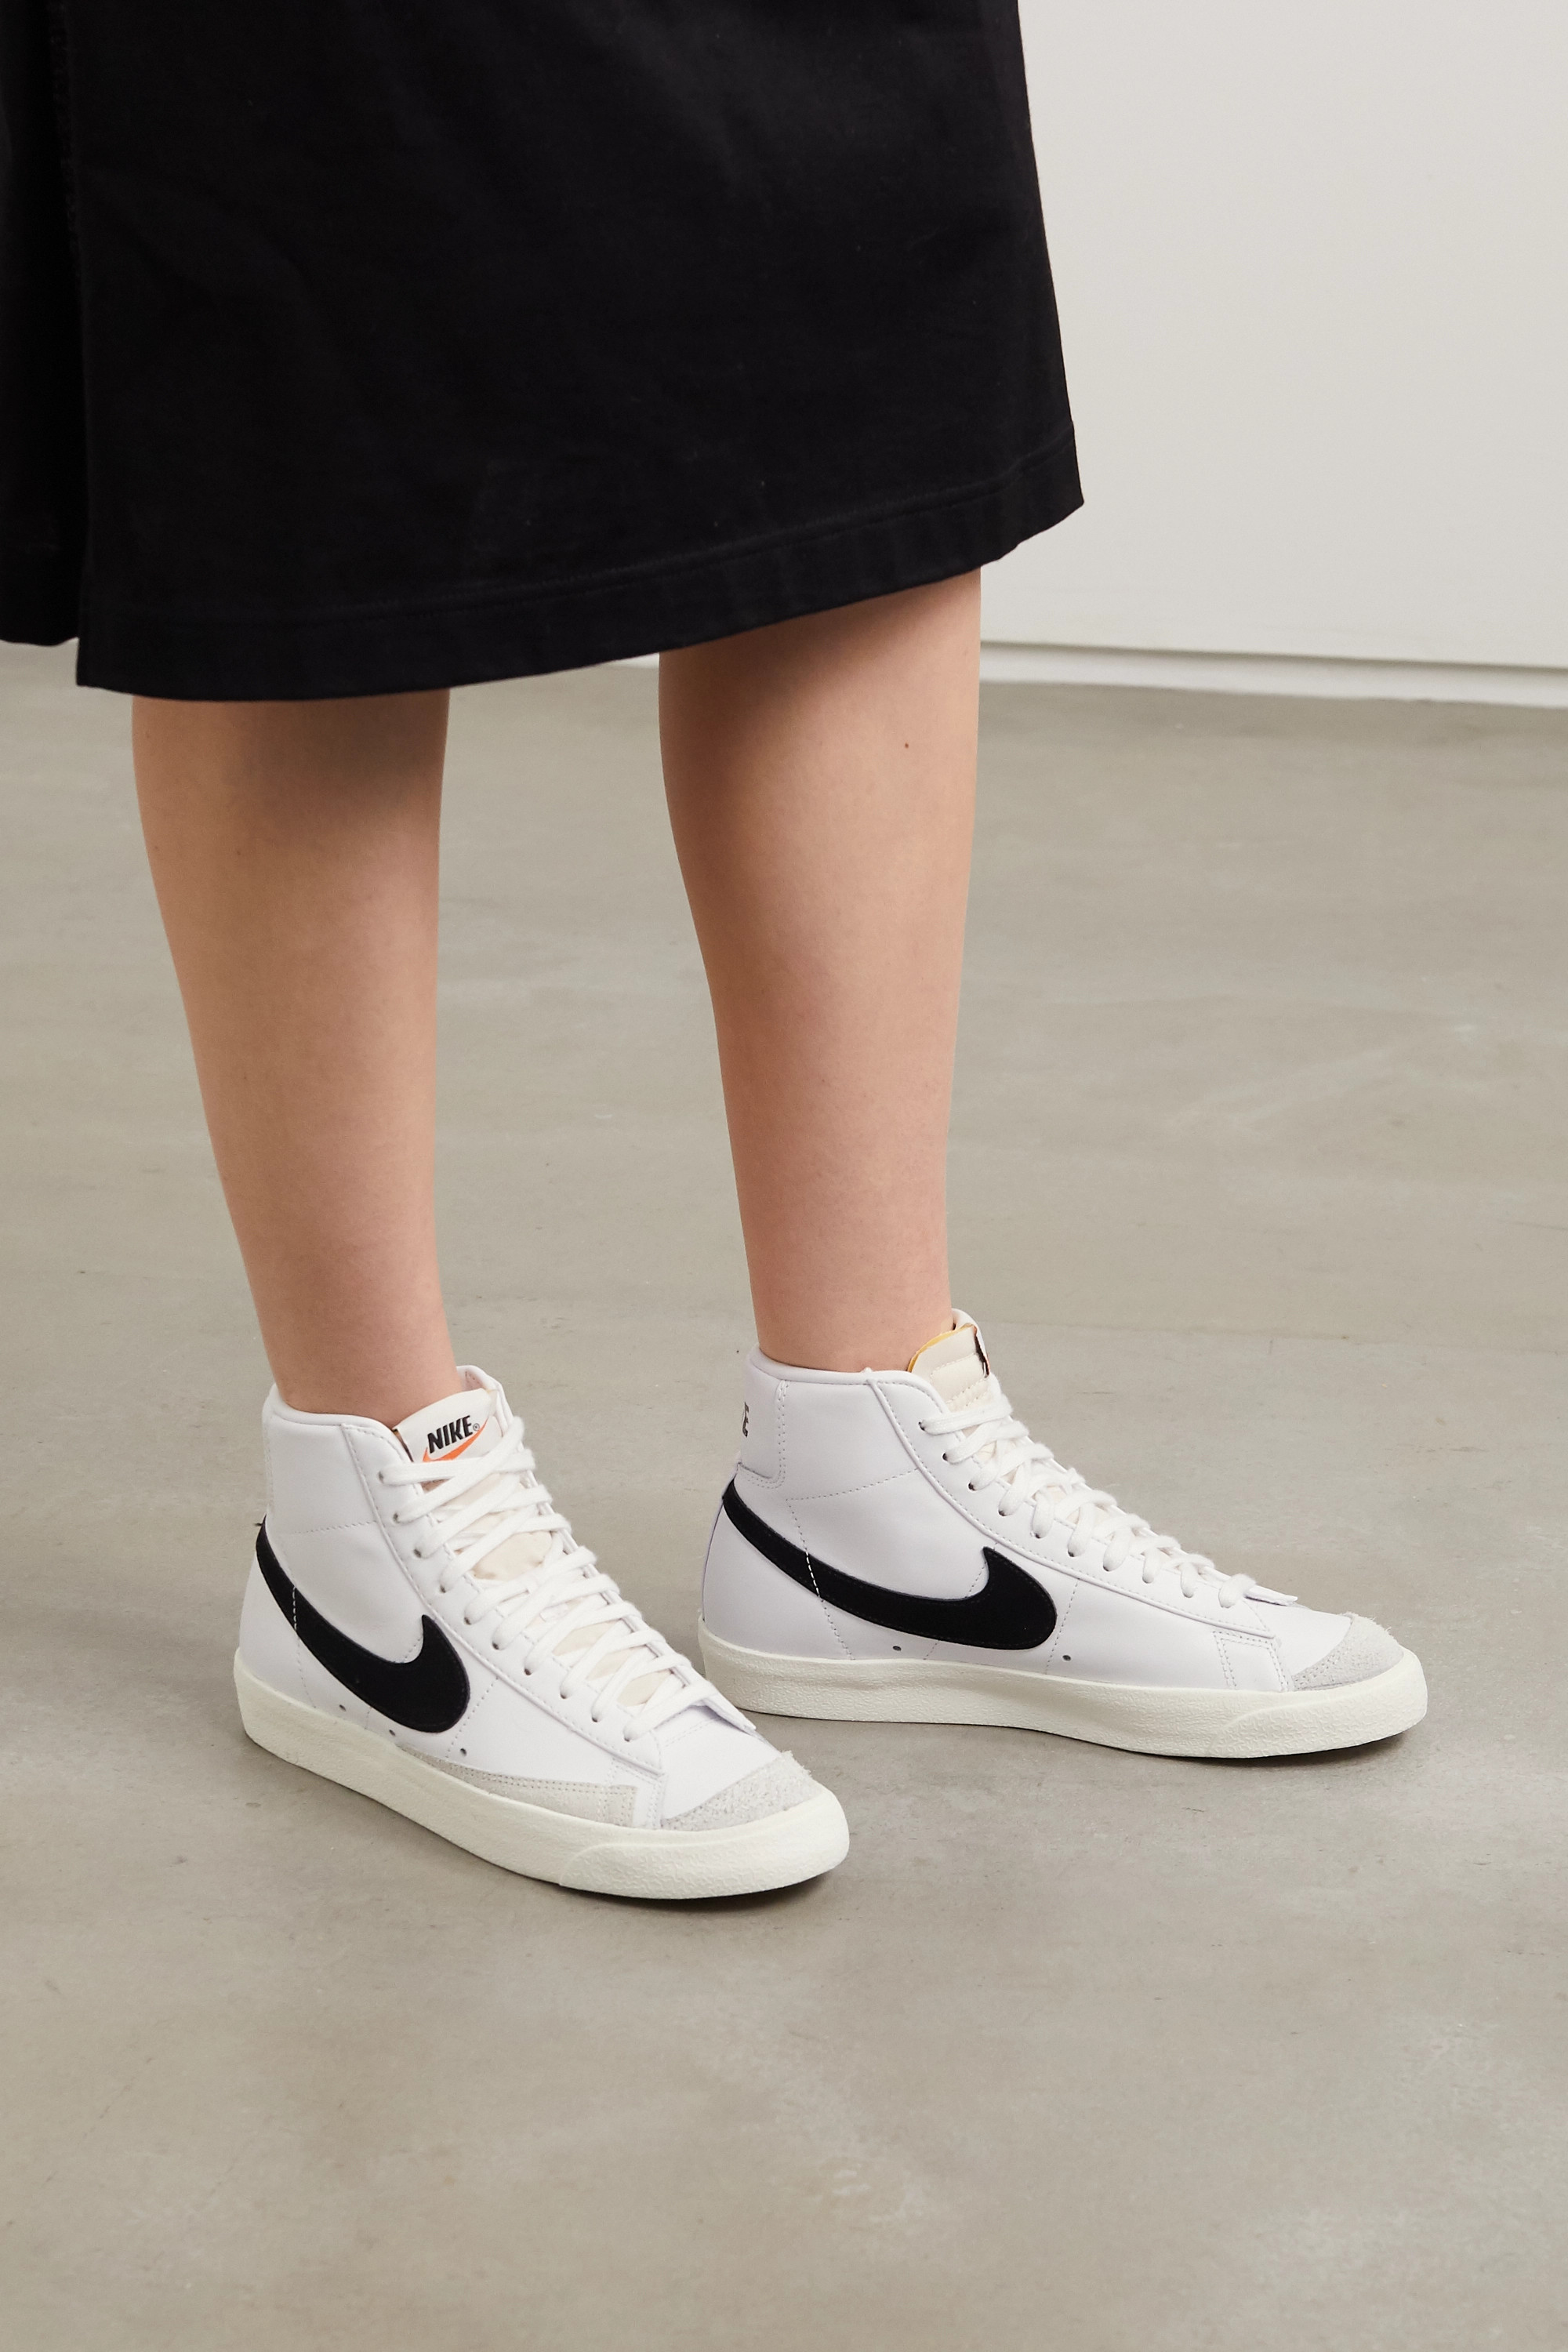 Obediencia Boquilla peso  White Blazer Mid suede-trimmed leather high-top sneakers | NET-A-PORTER |  NIKE | NET-A-PORTER